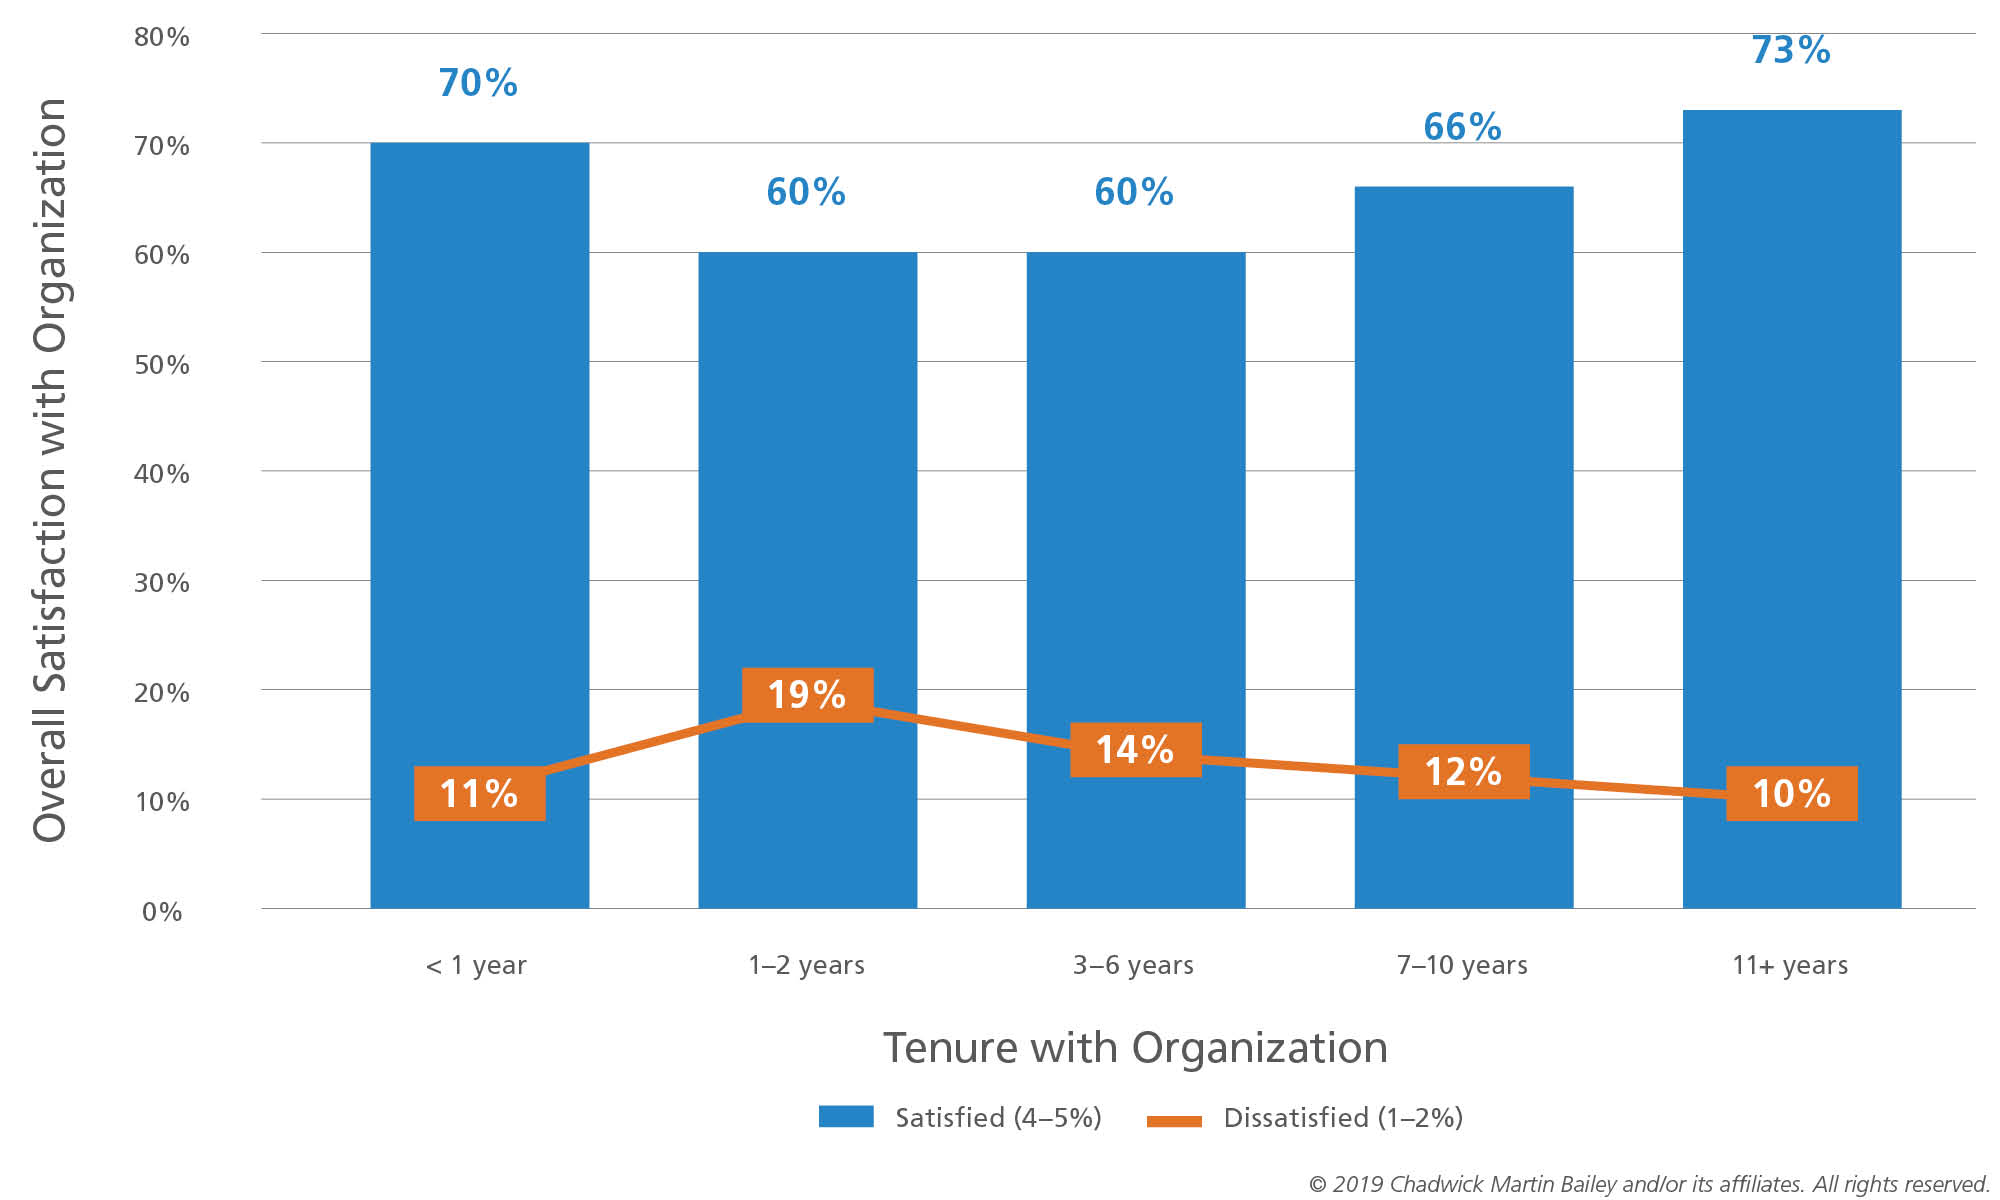 Overall satisfaction with organization compared to tenure with organization chart